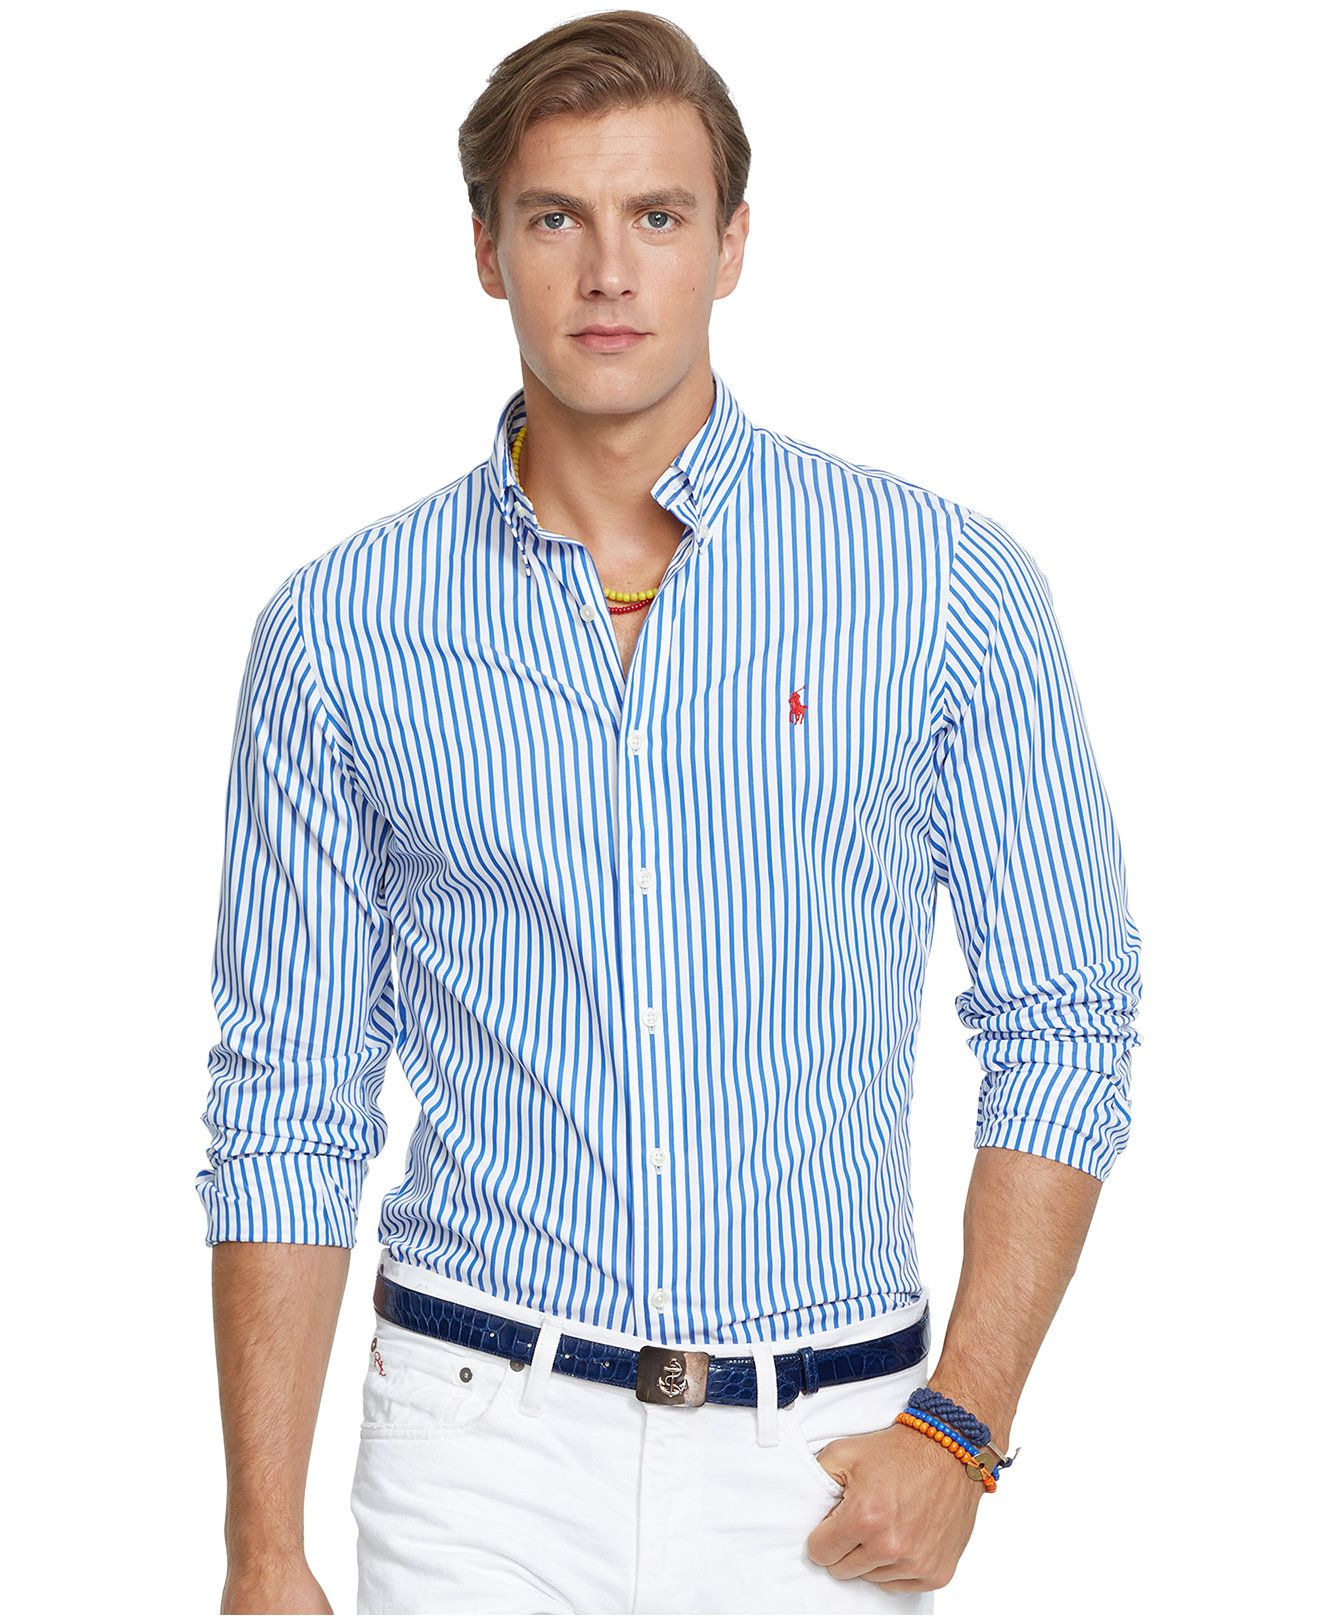 09f8ff0d2b1543 Polo Ralph Lauren Striped Poplin Shirt - Casual Button-Down Shirts - Men -  Macy s